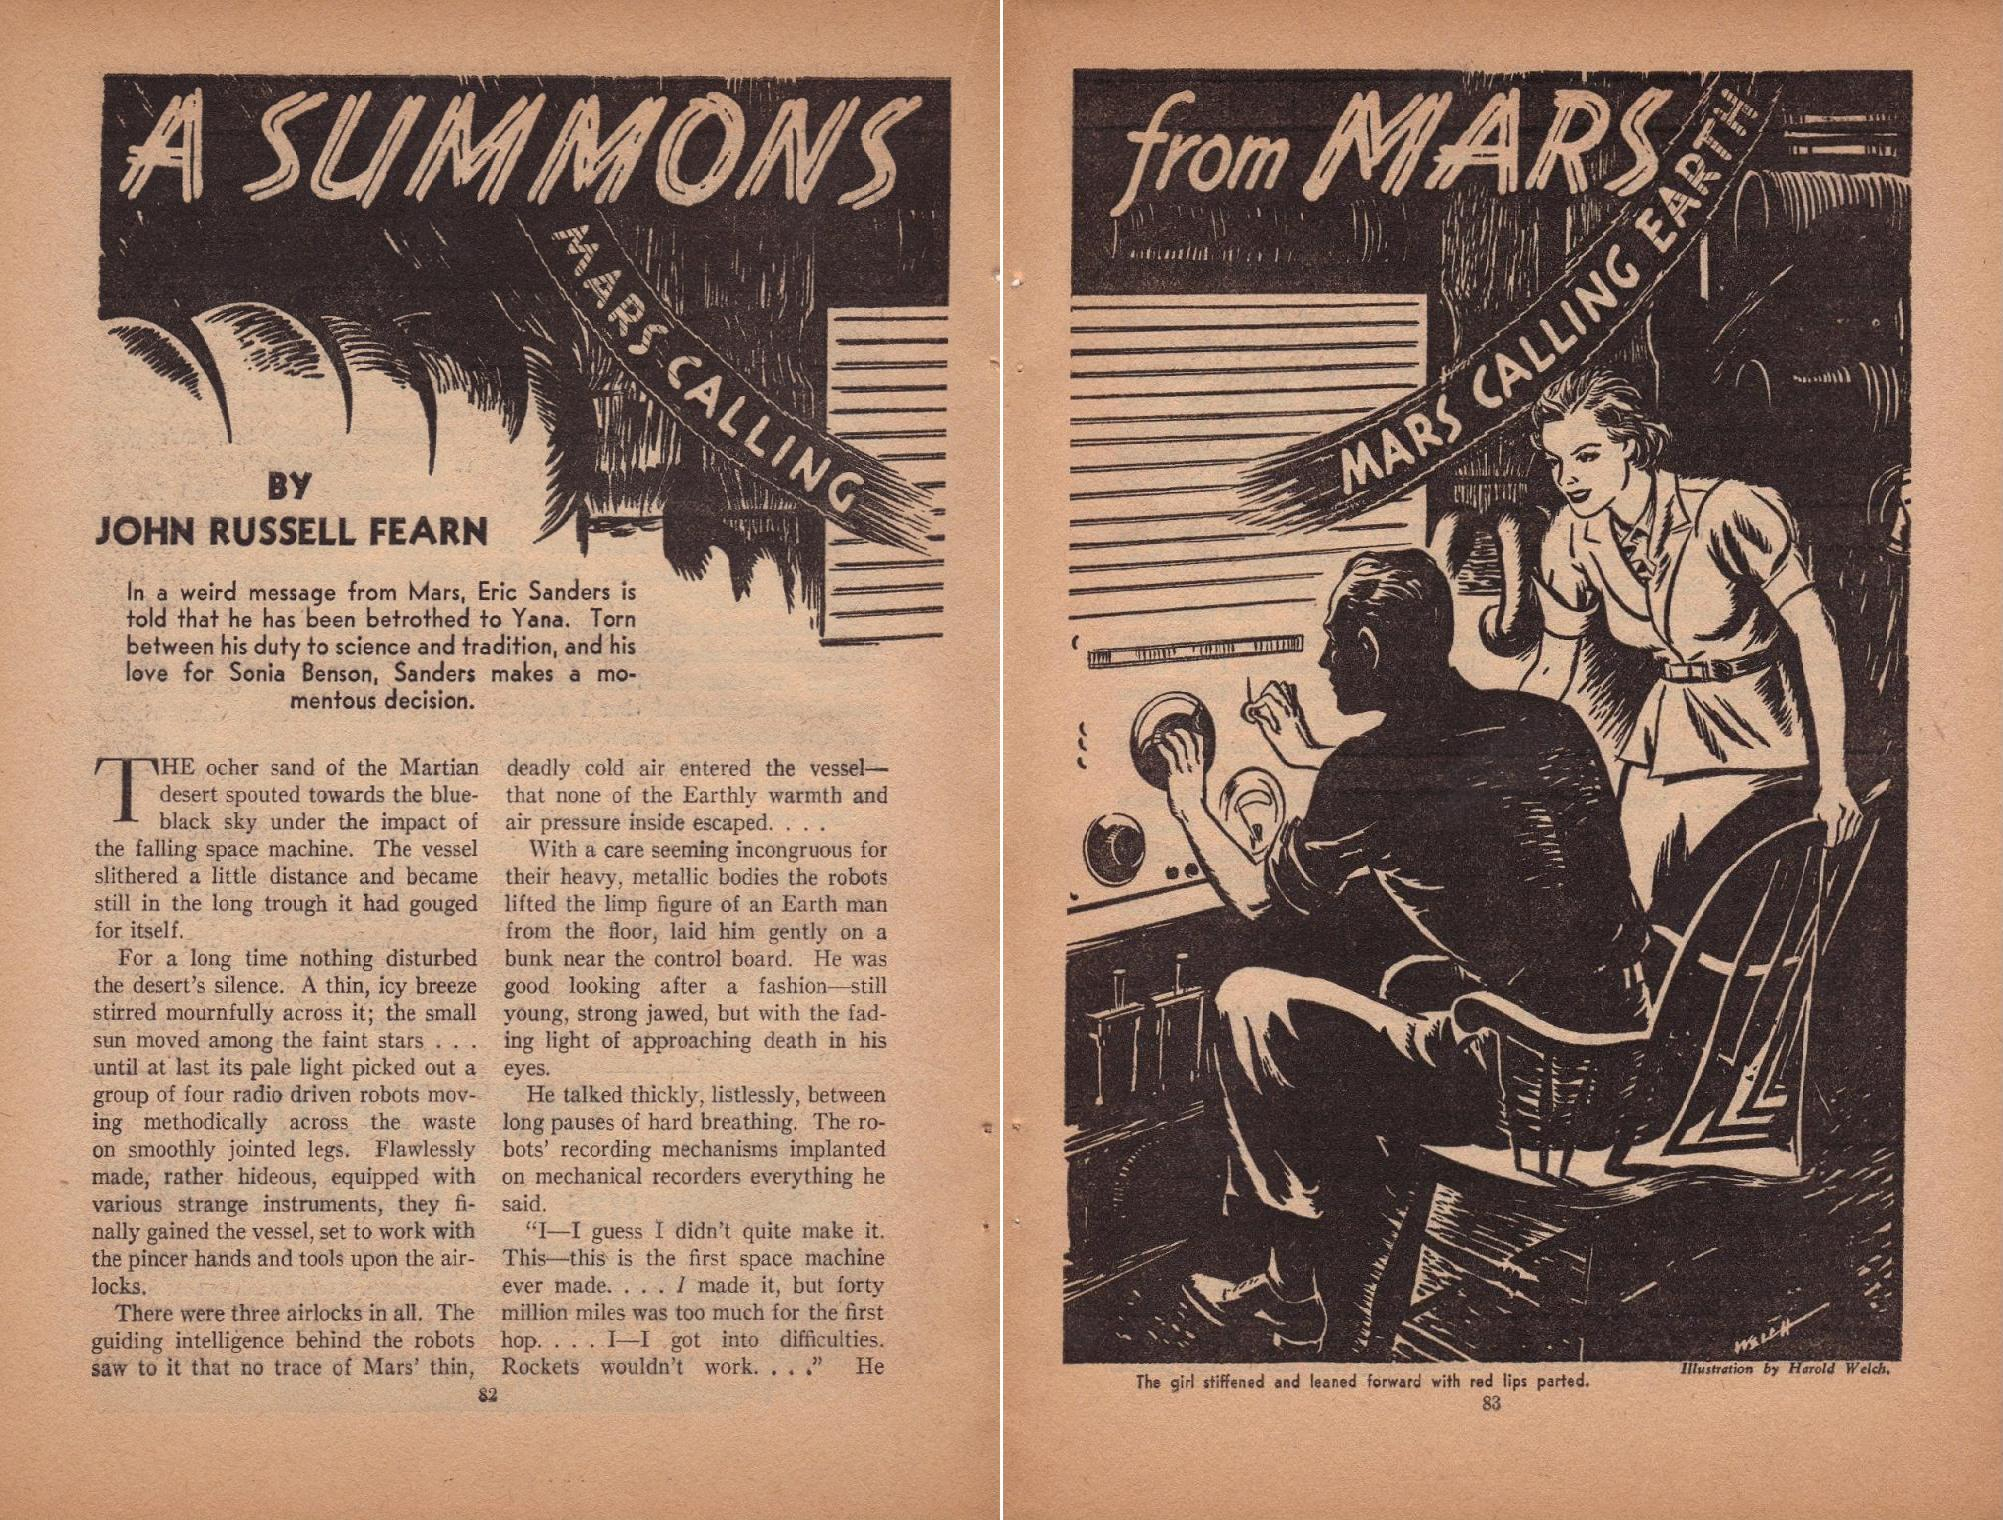 A Summons from Mars by Harold Kee Welch, 1938